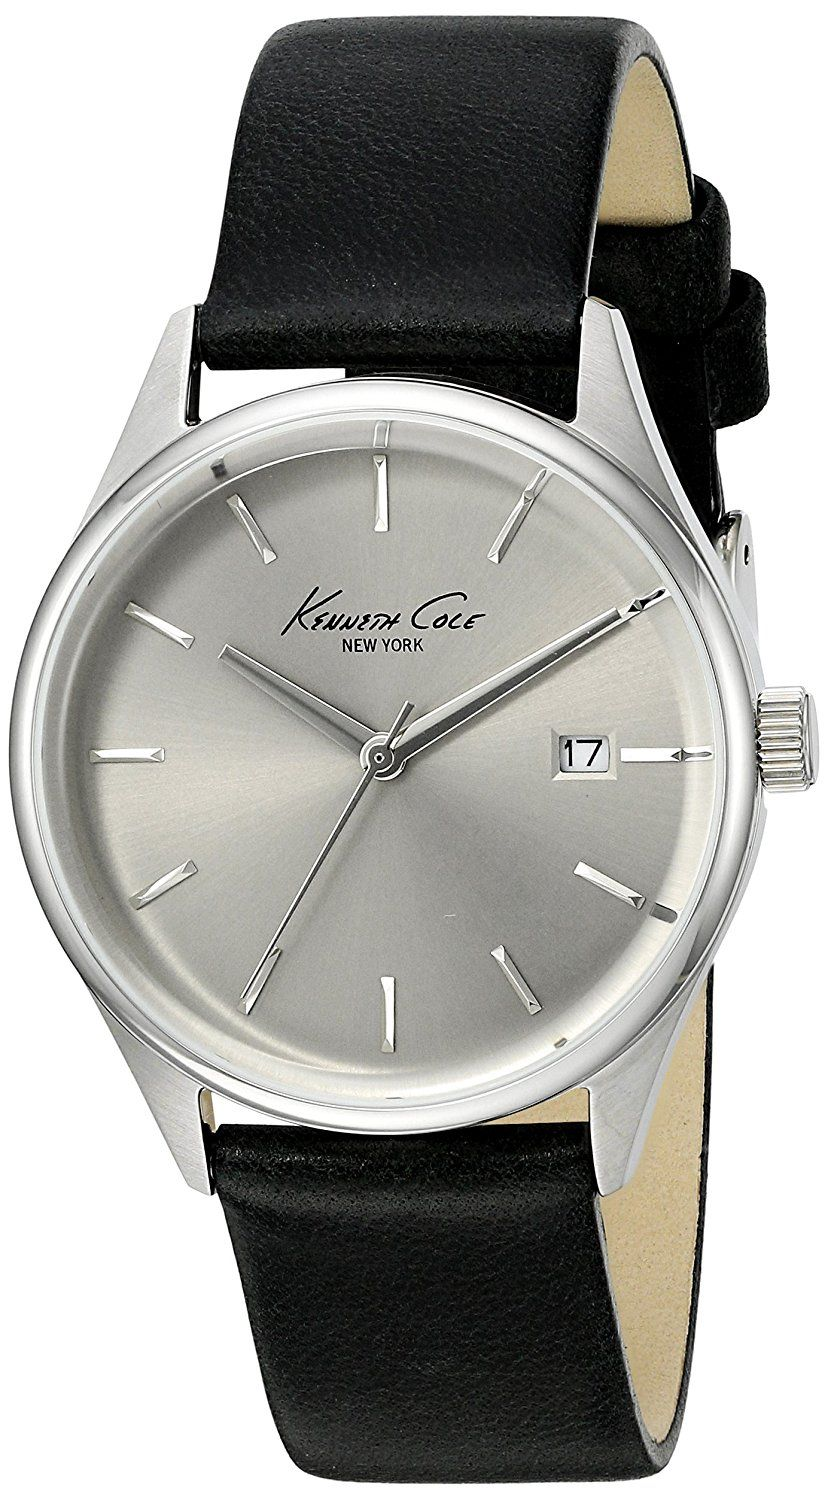 Kenneth Cole New York Women S Classic Quartz Stainless Steel And Black Leather Dress Watch Model 1 Black Leather Dresses Kenneth Cole New York Classy Watch [ 1500 x 828 Pixel ]